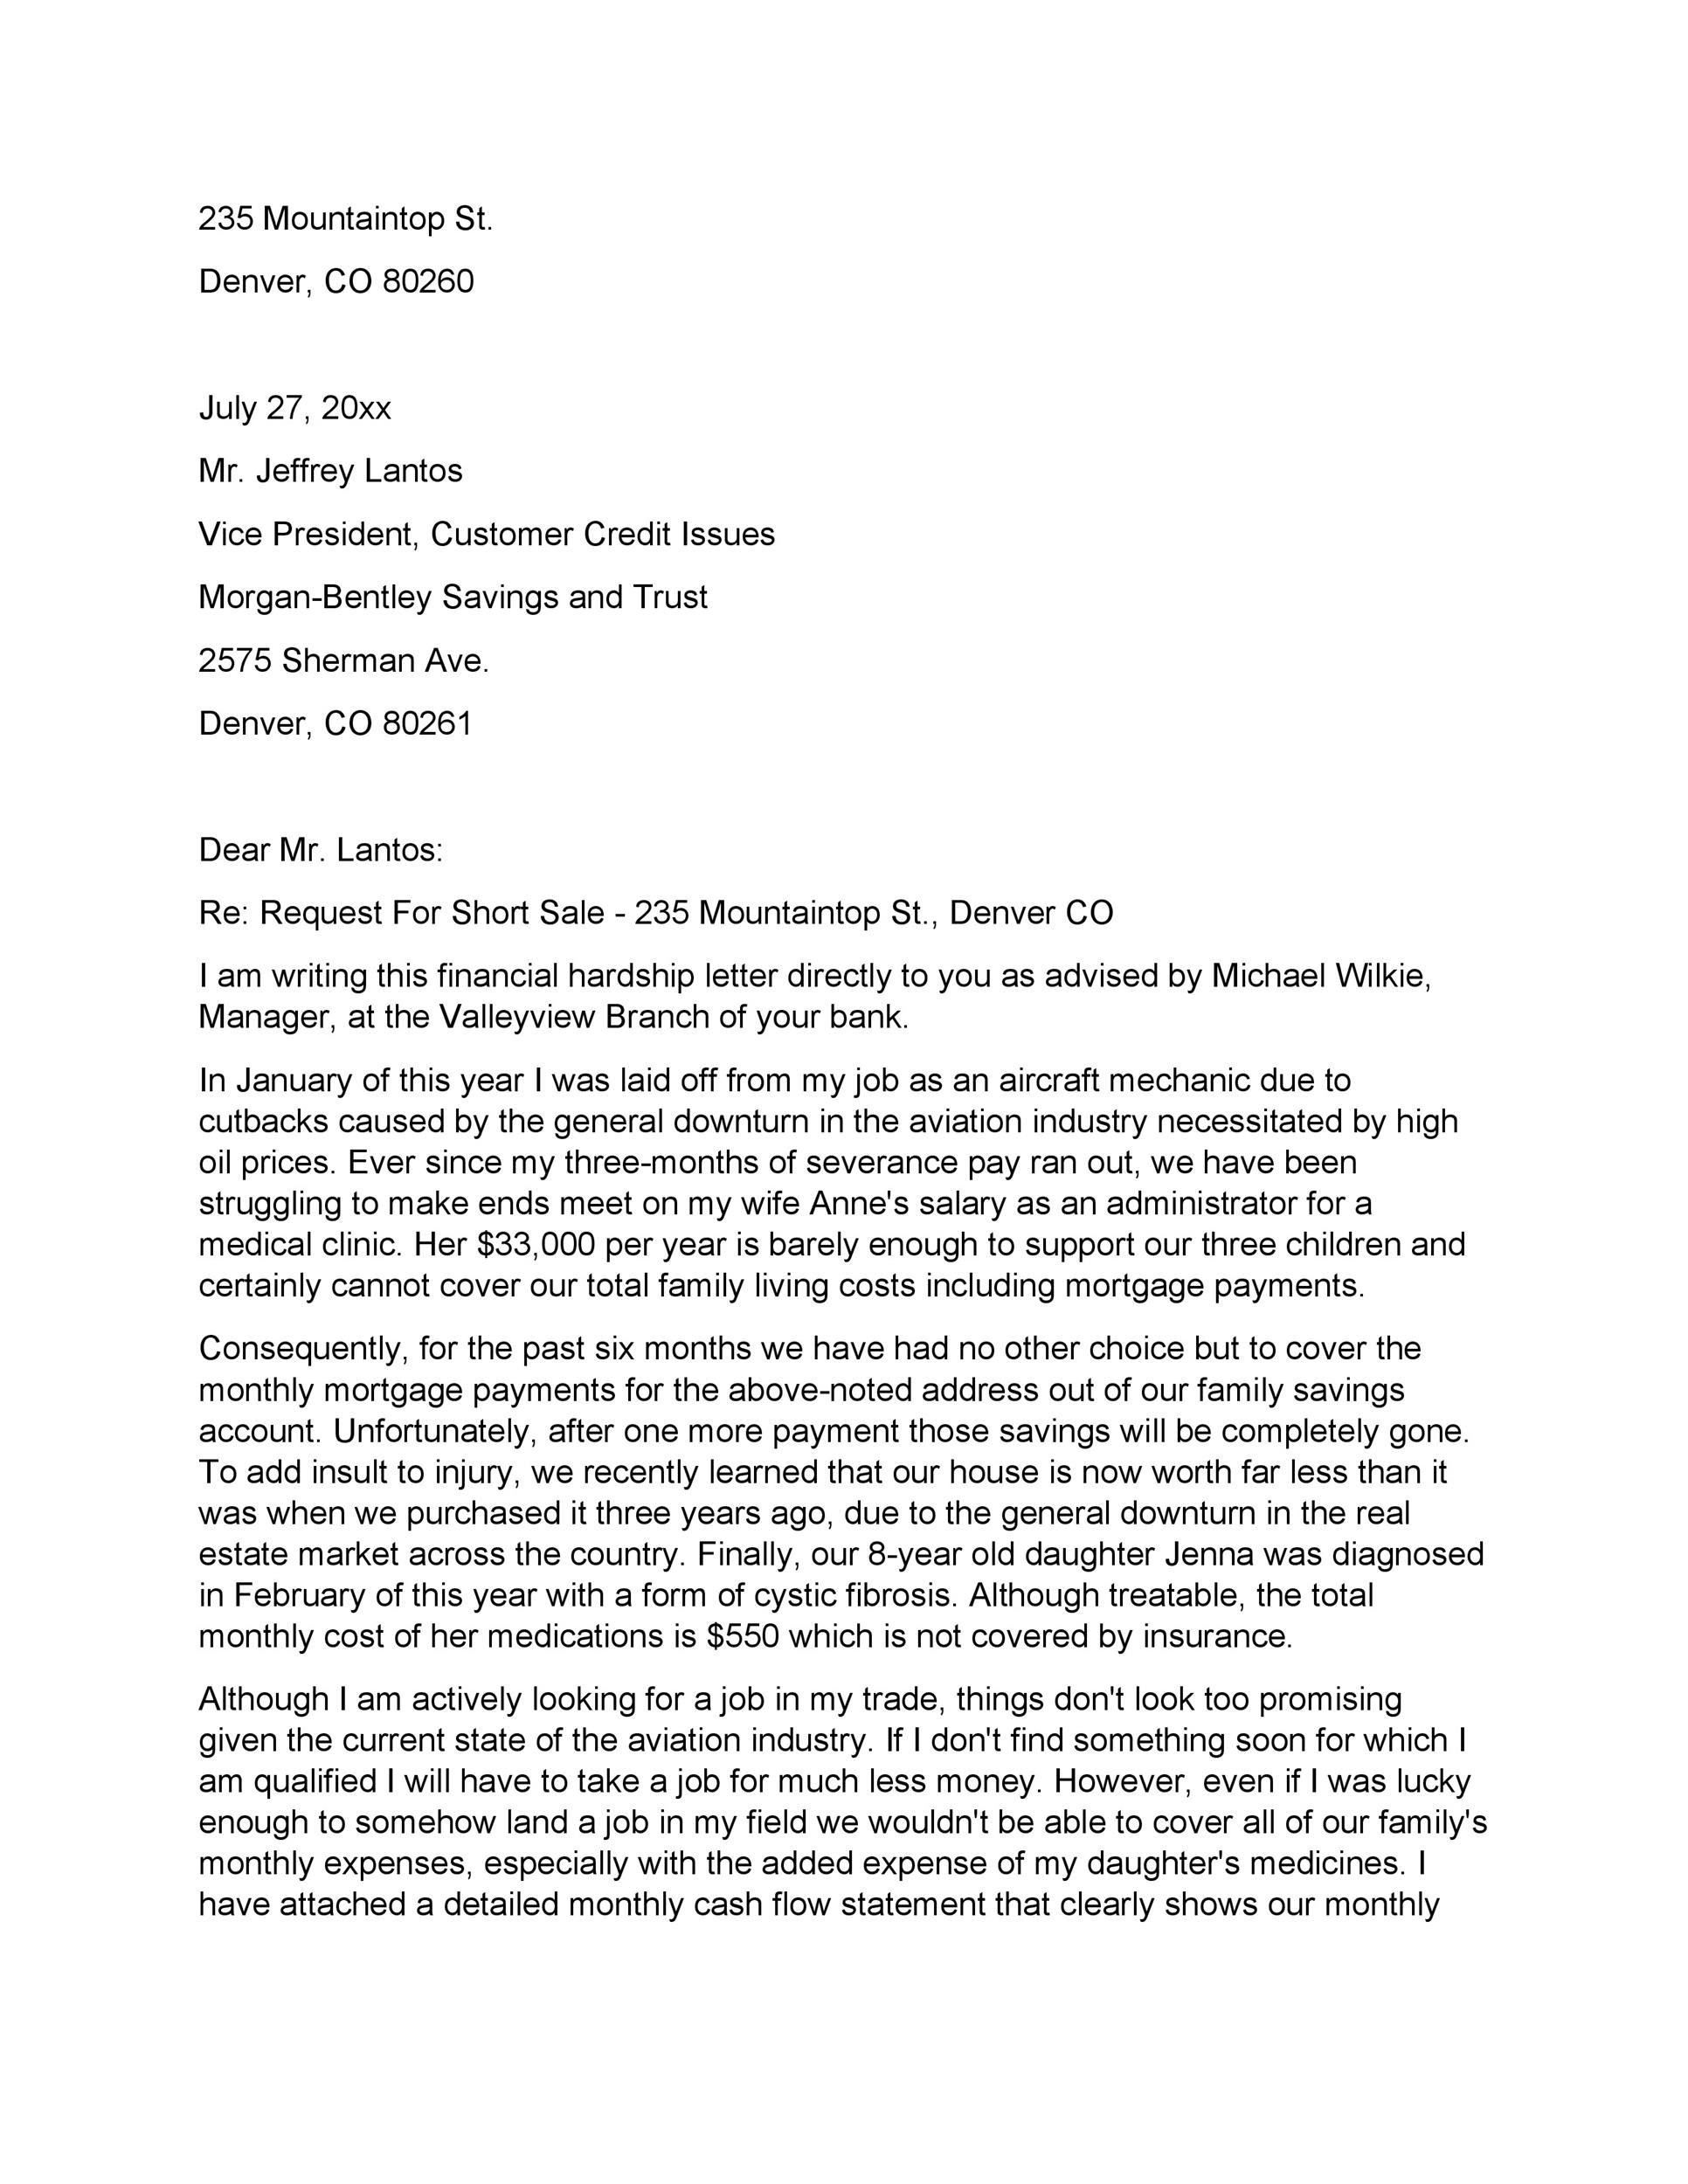 Example Hardship Letter To Mortgage Company from templatelab.com